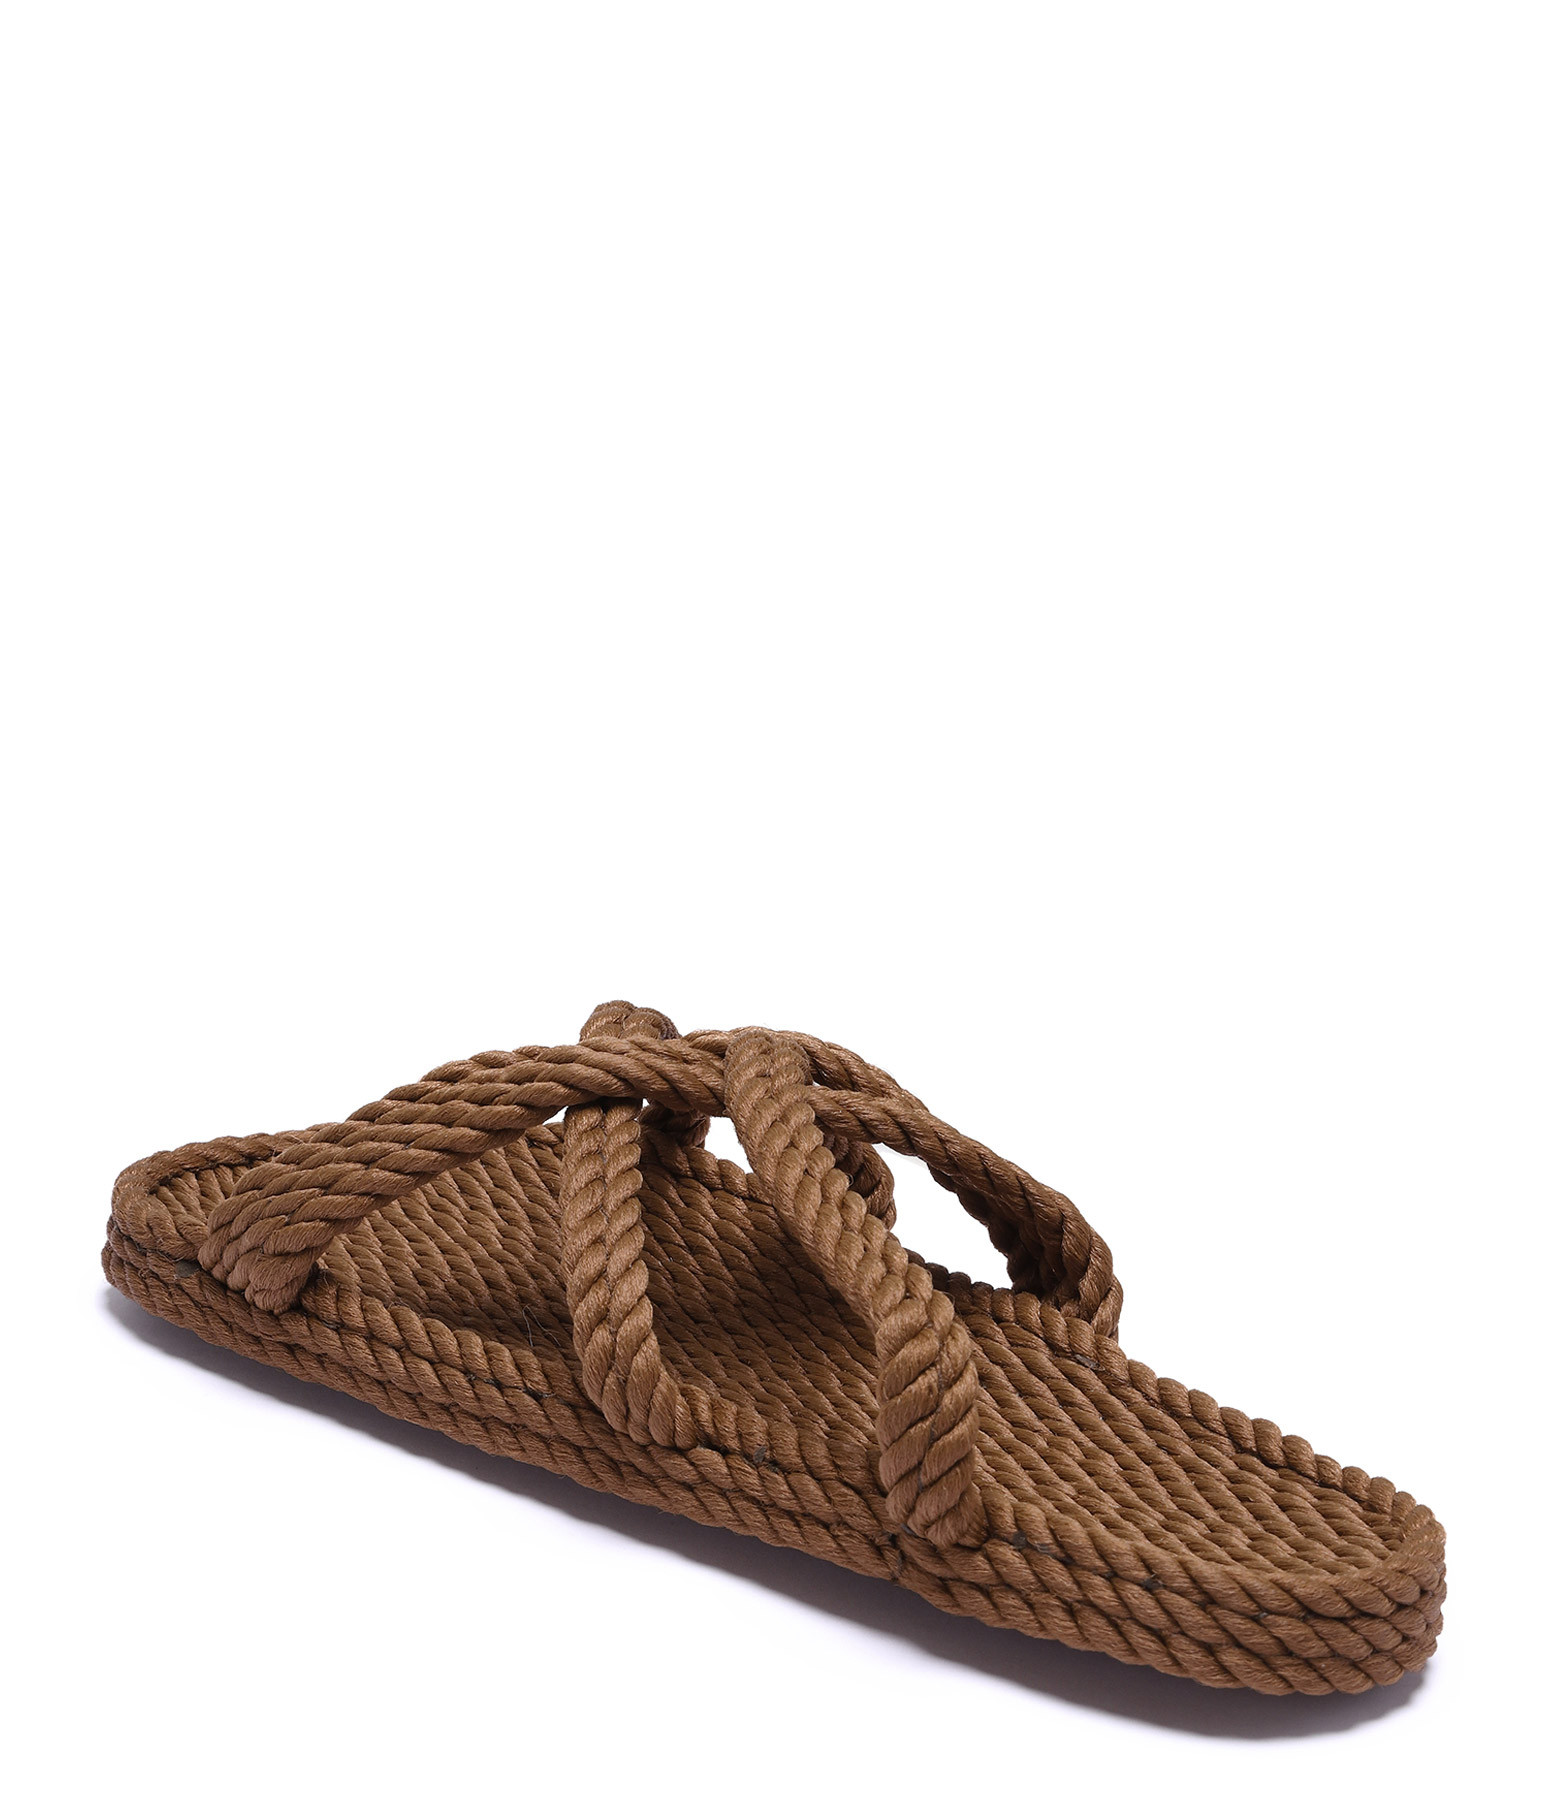 NOMADIC STATE OF MIND - Mules Vegan Slip On Corde Café